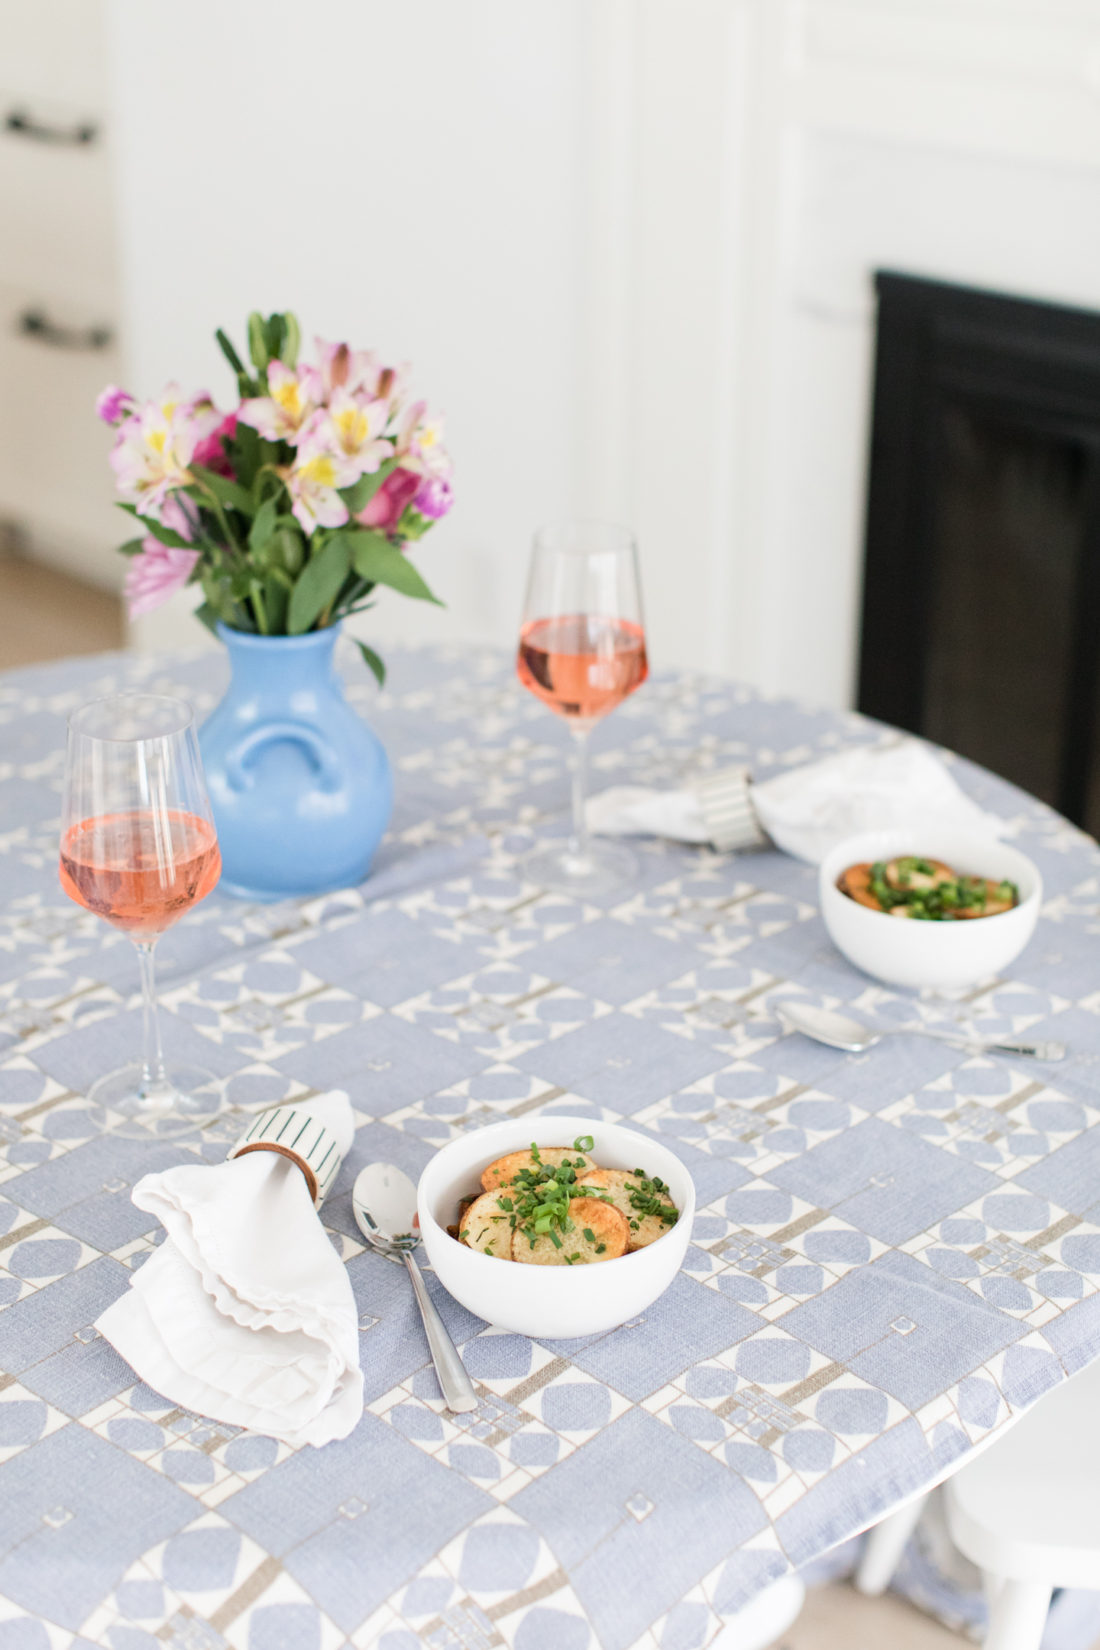 Eva Amurri Martino sets a simple and sweet scene for date night at home with her husband